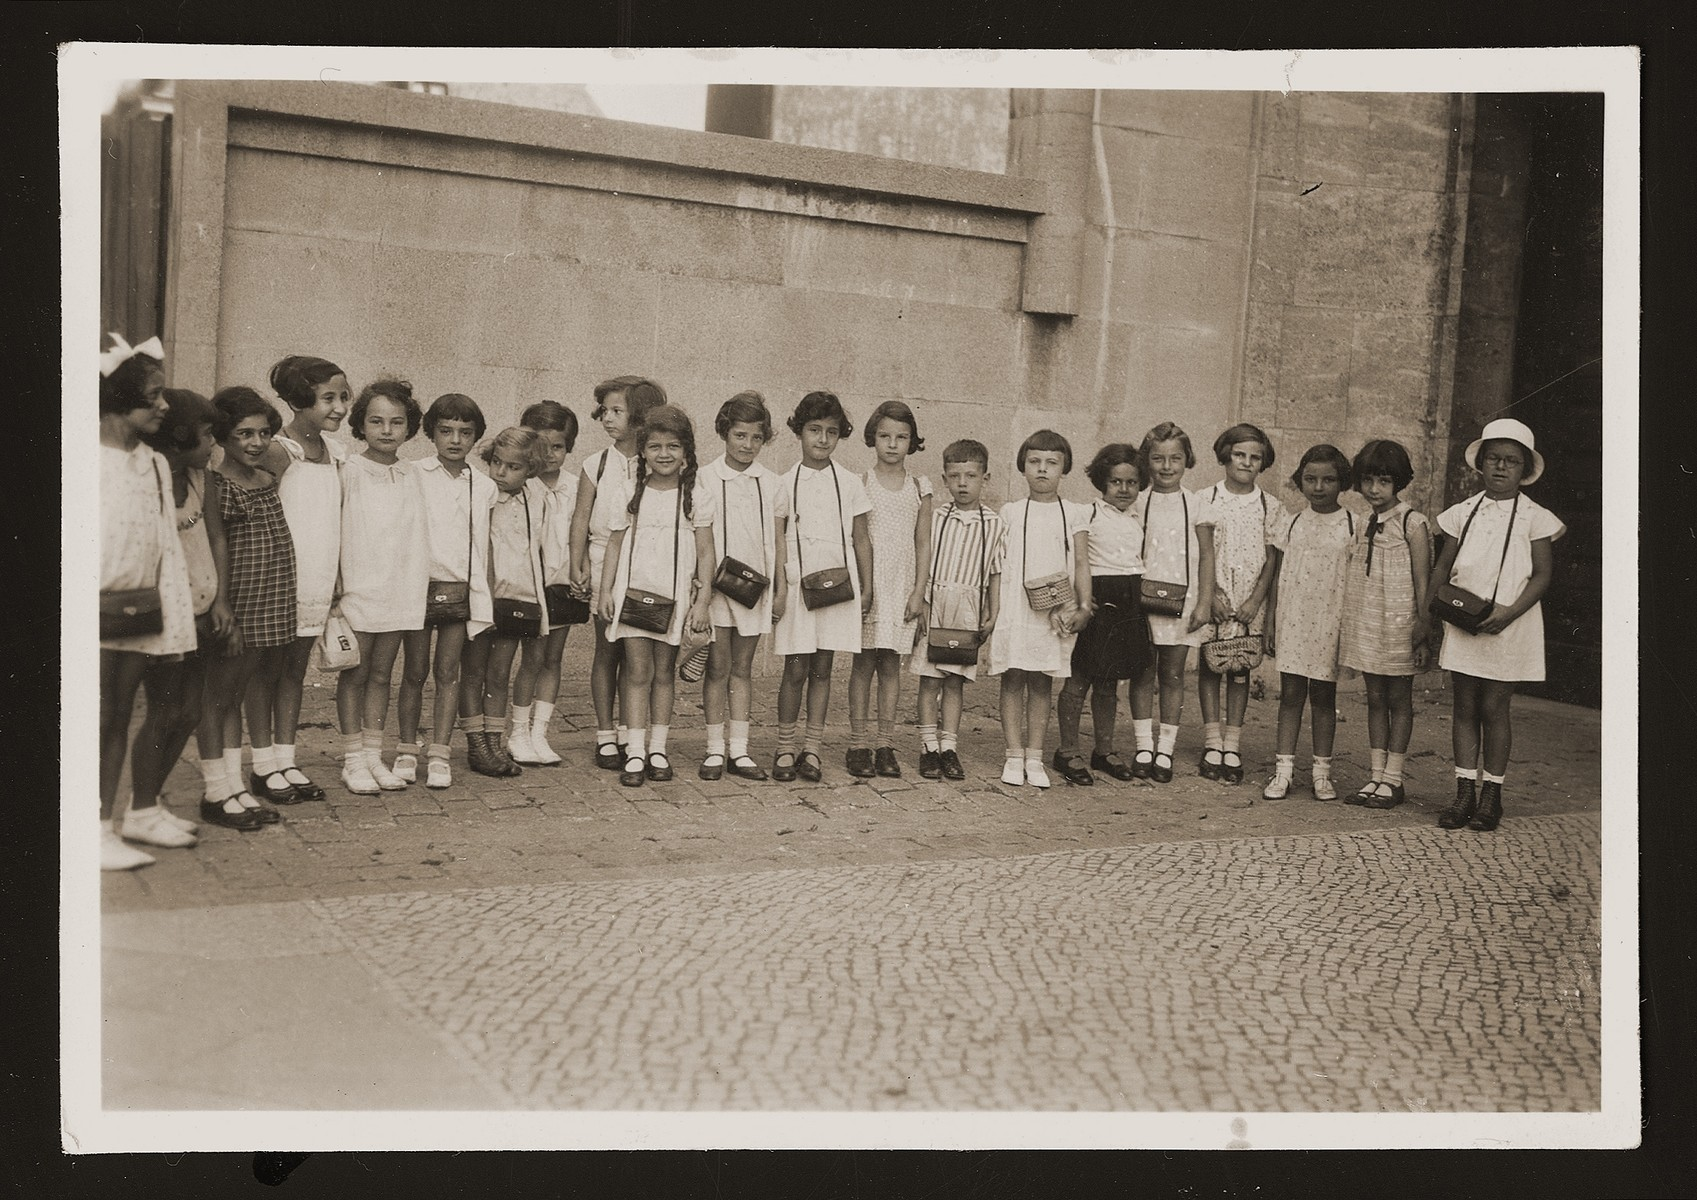 Group portrait of children in the second form at the Jewish Prinzregeuten school in Berlin as they prepare for a field trip.  Among those pictured are Anita Plachte (tenth from the right) and Mariana Waksner (far right).